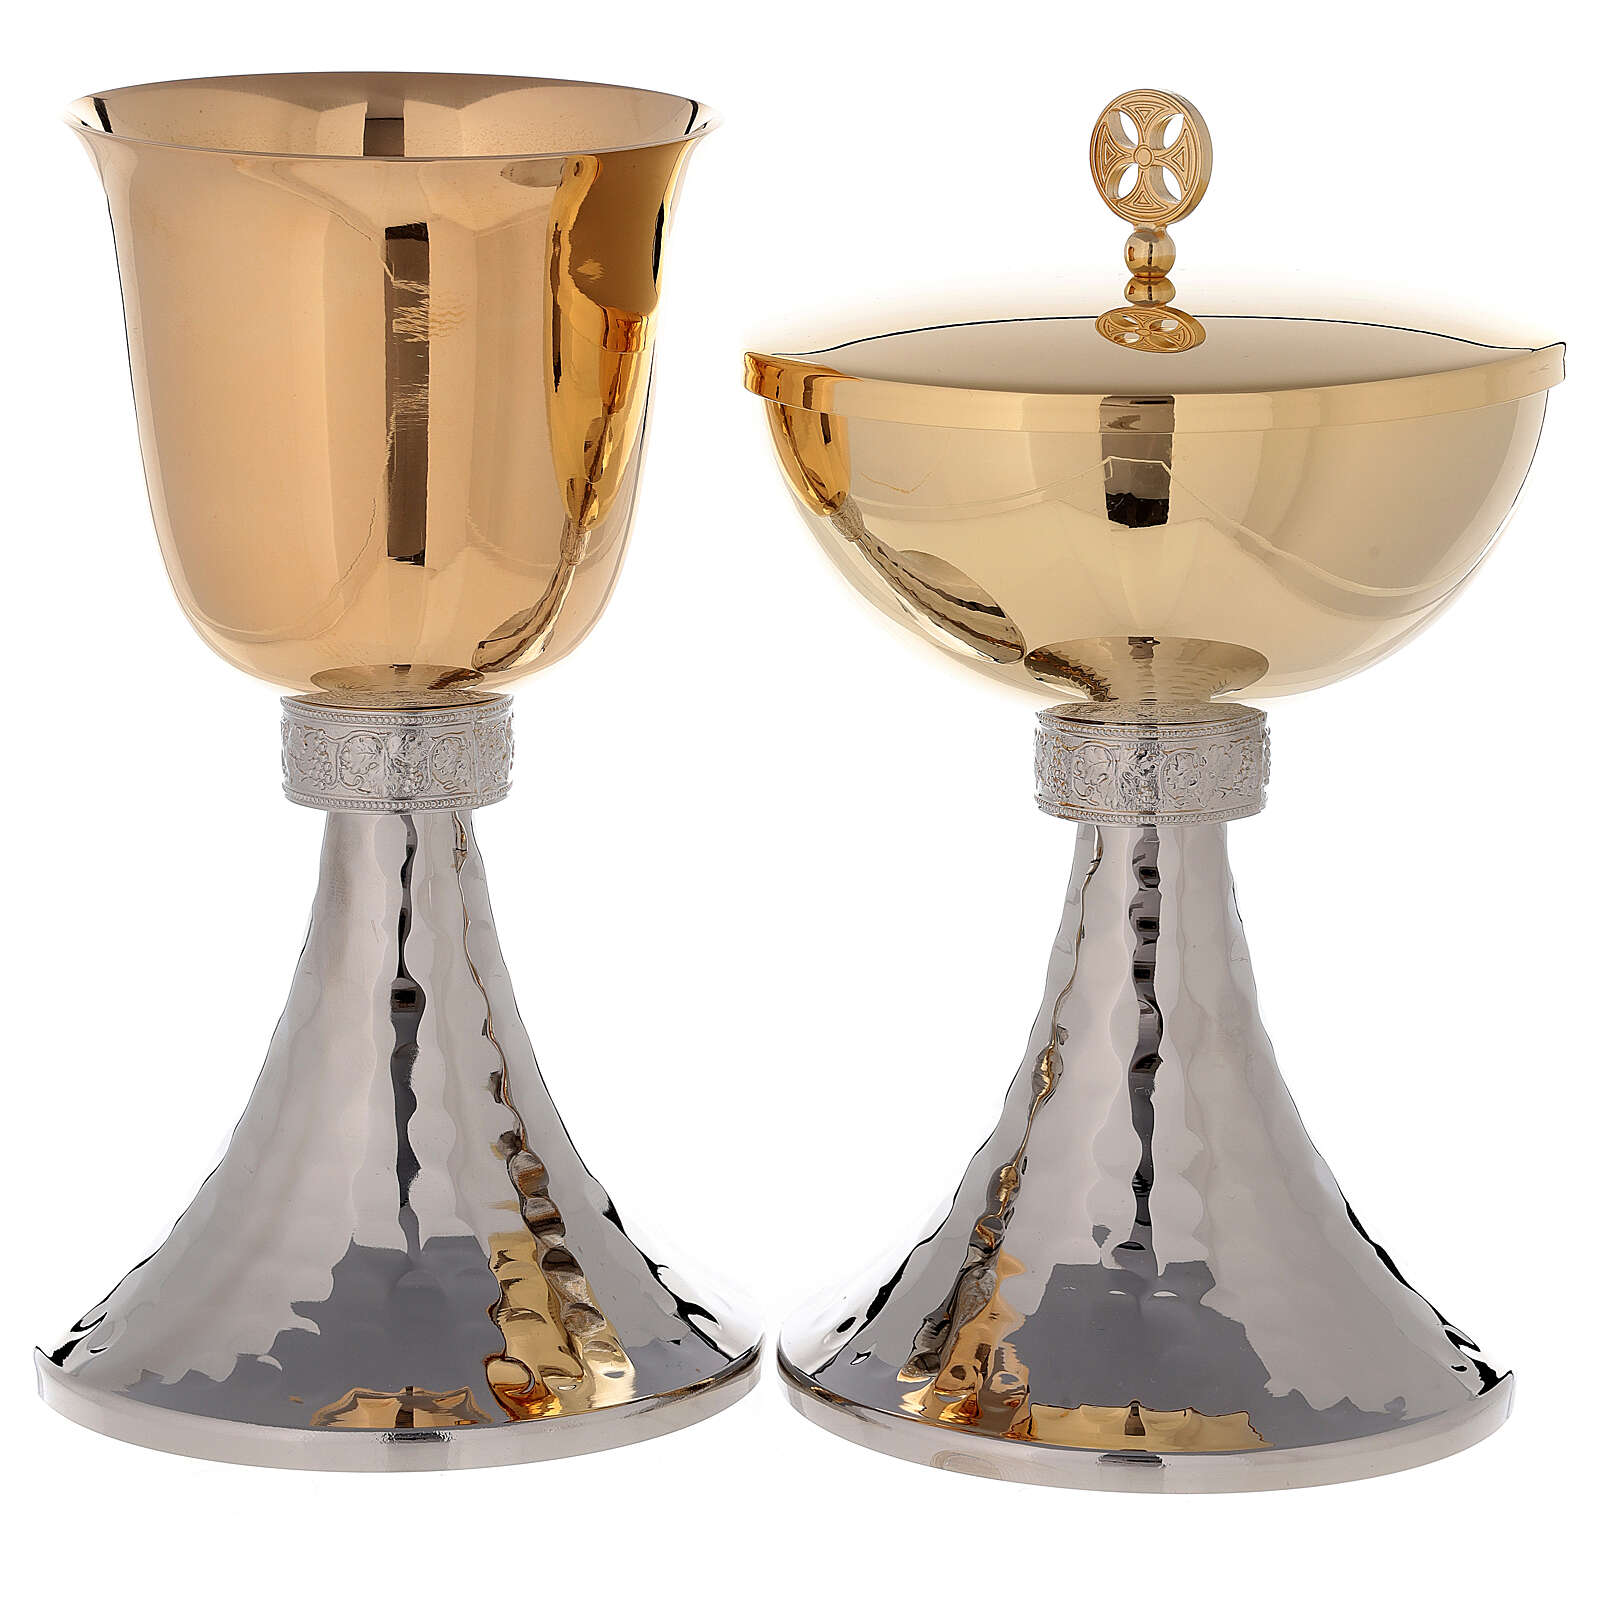 Chalice and ciborium gold plated brass bowl with hammered base 4